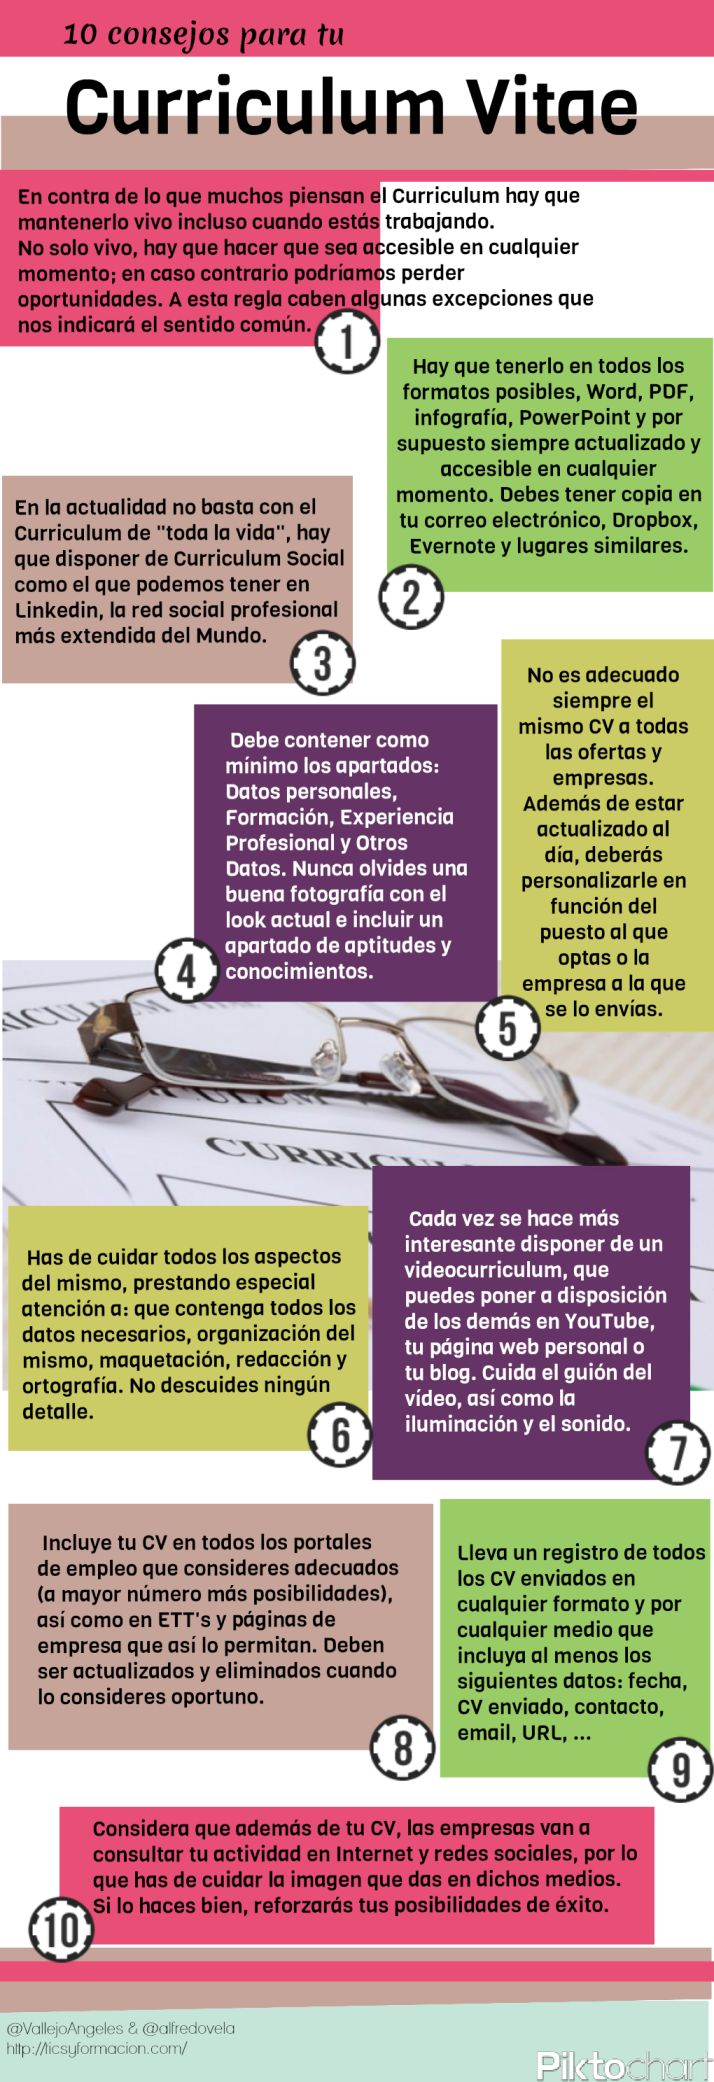 17 Best images about Infografias on Pinterest | Fortaleza ...